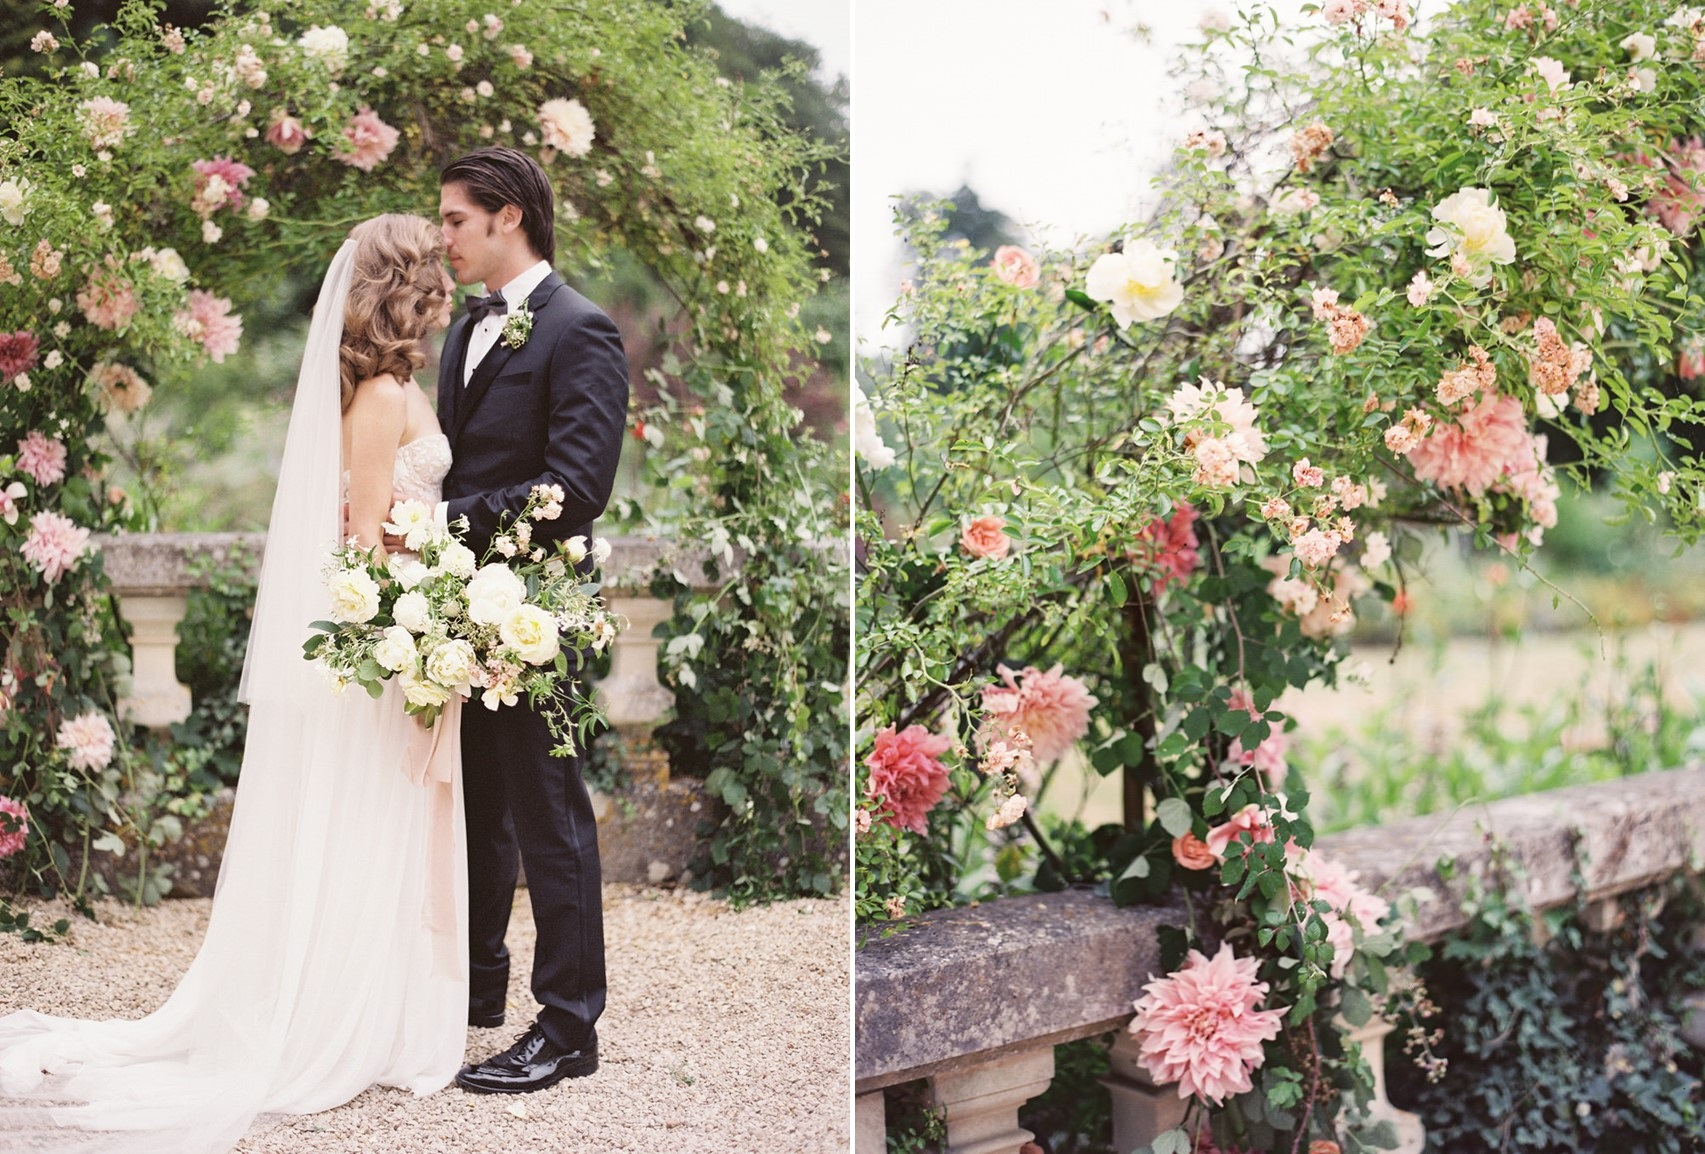 Pink Rose Floral Aisle Arch for a Romantic Outdoor Wedding Ceremony